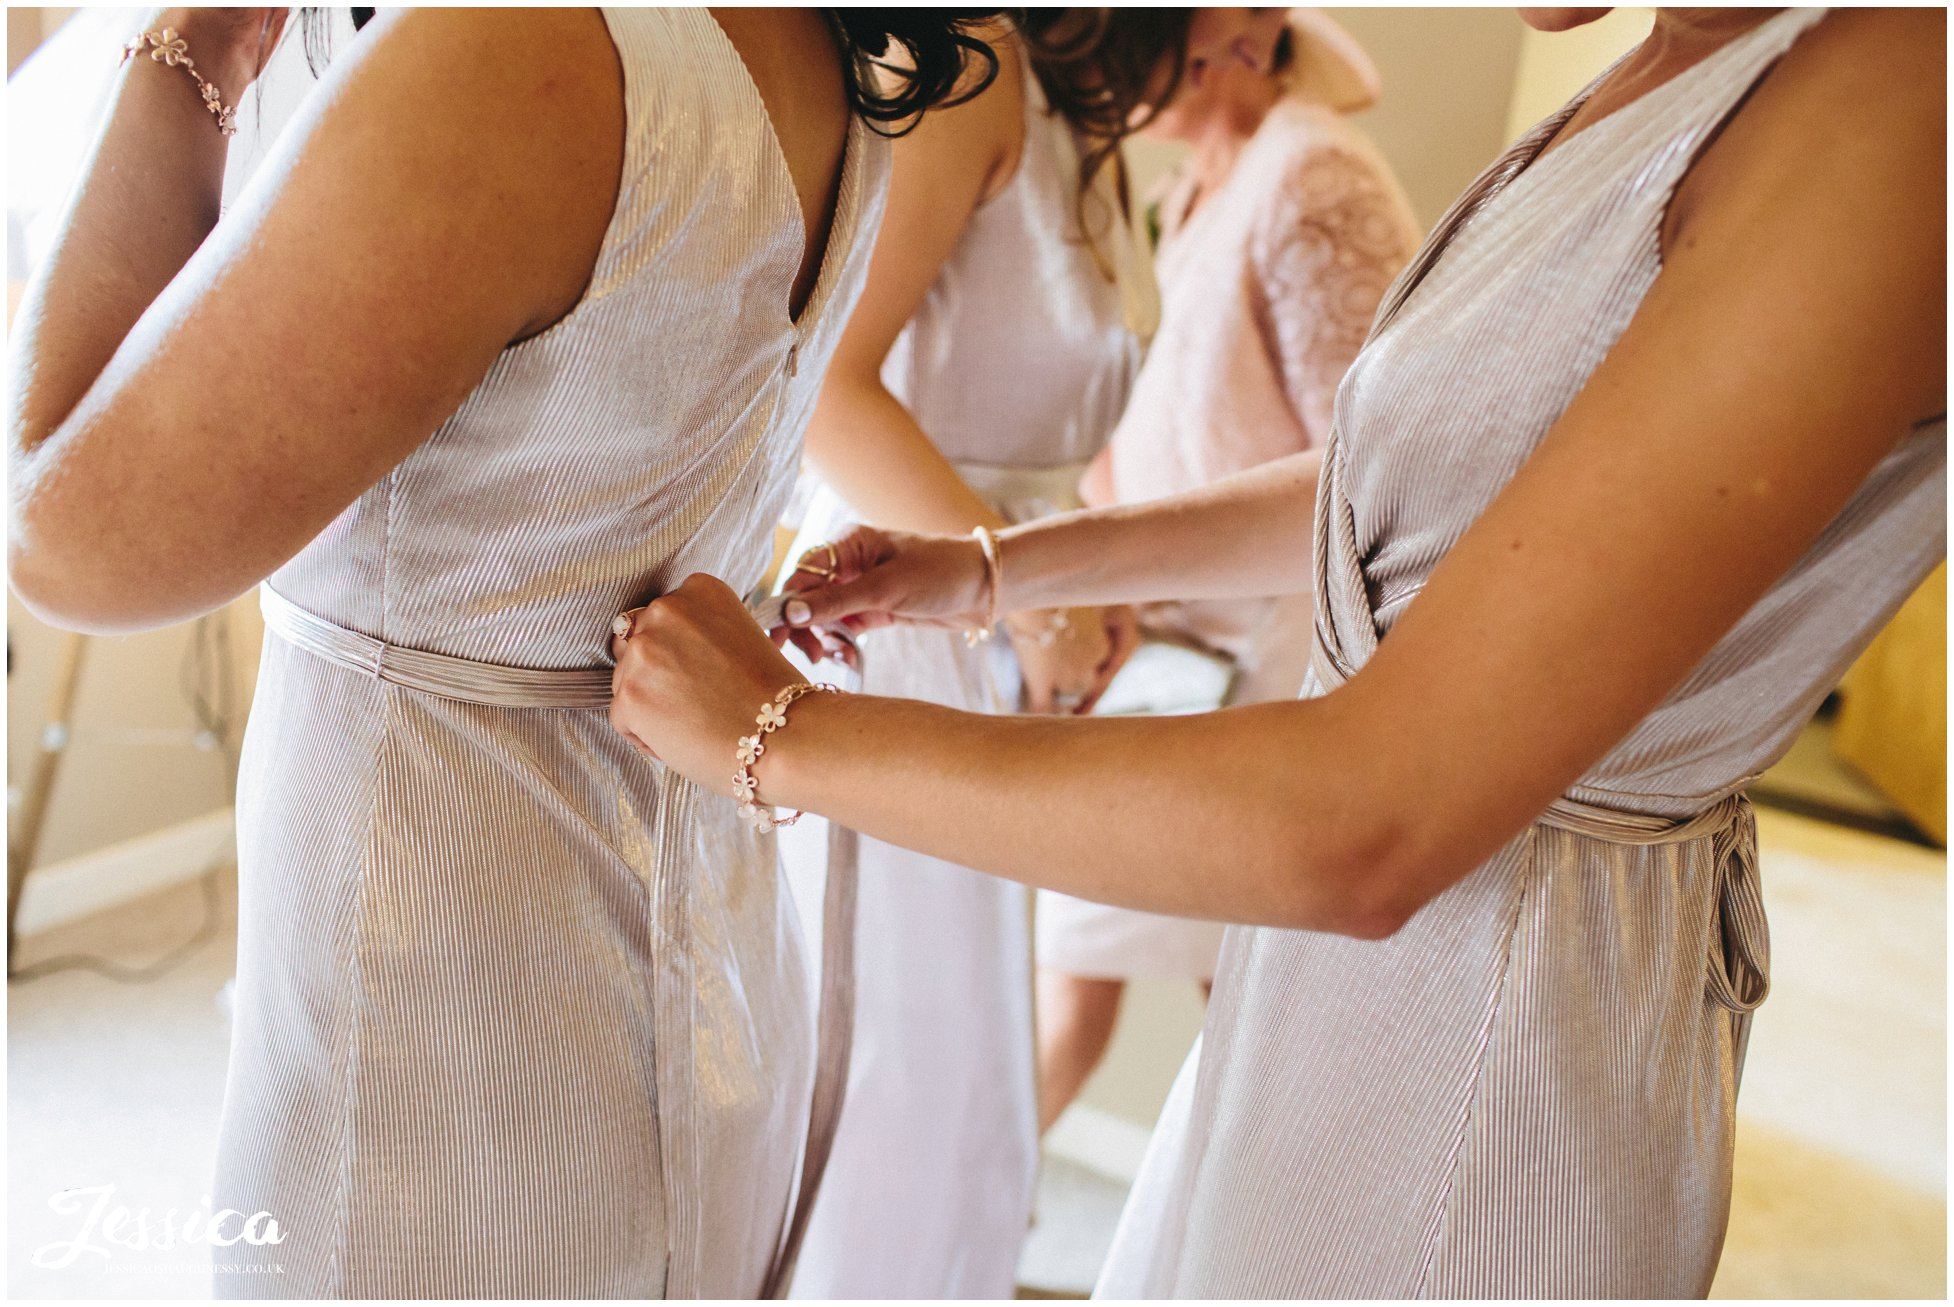 bridesmaids get into their dresses before a wedding at tower hill barns in north wales